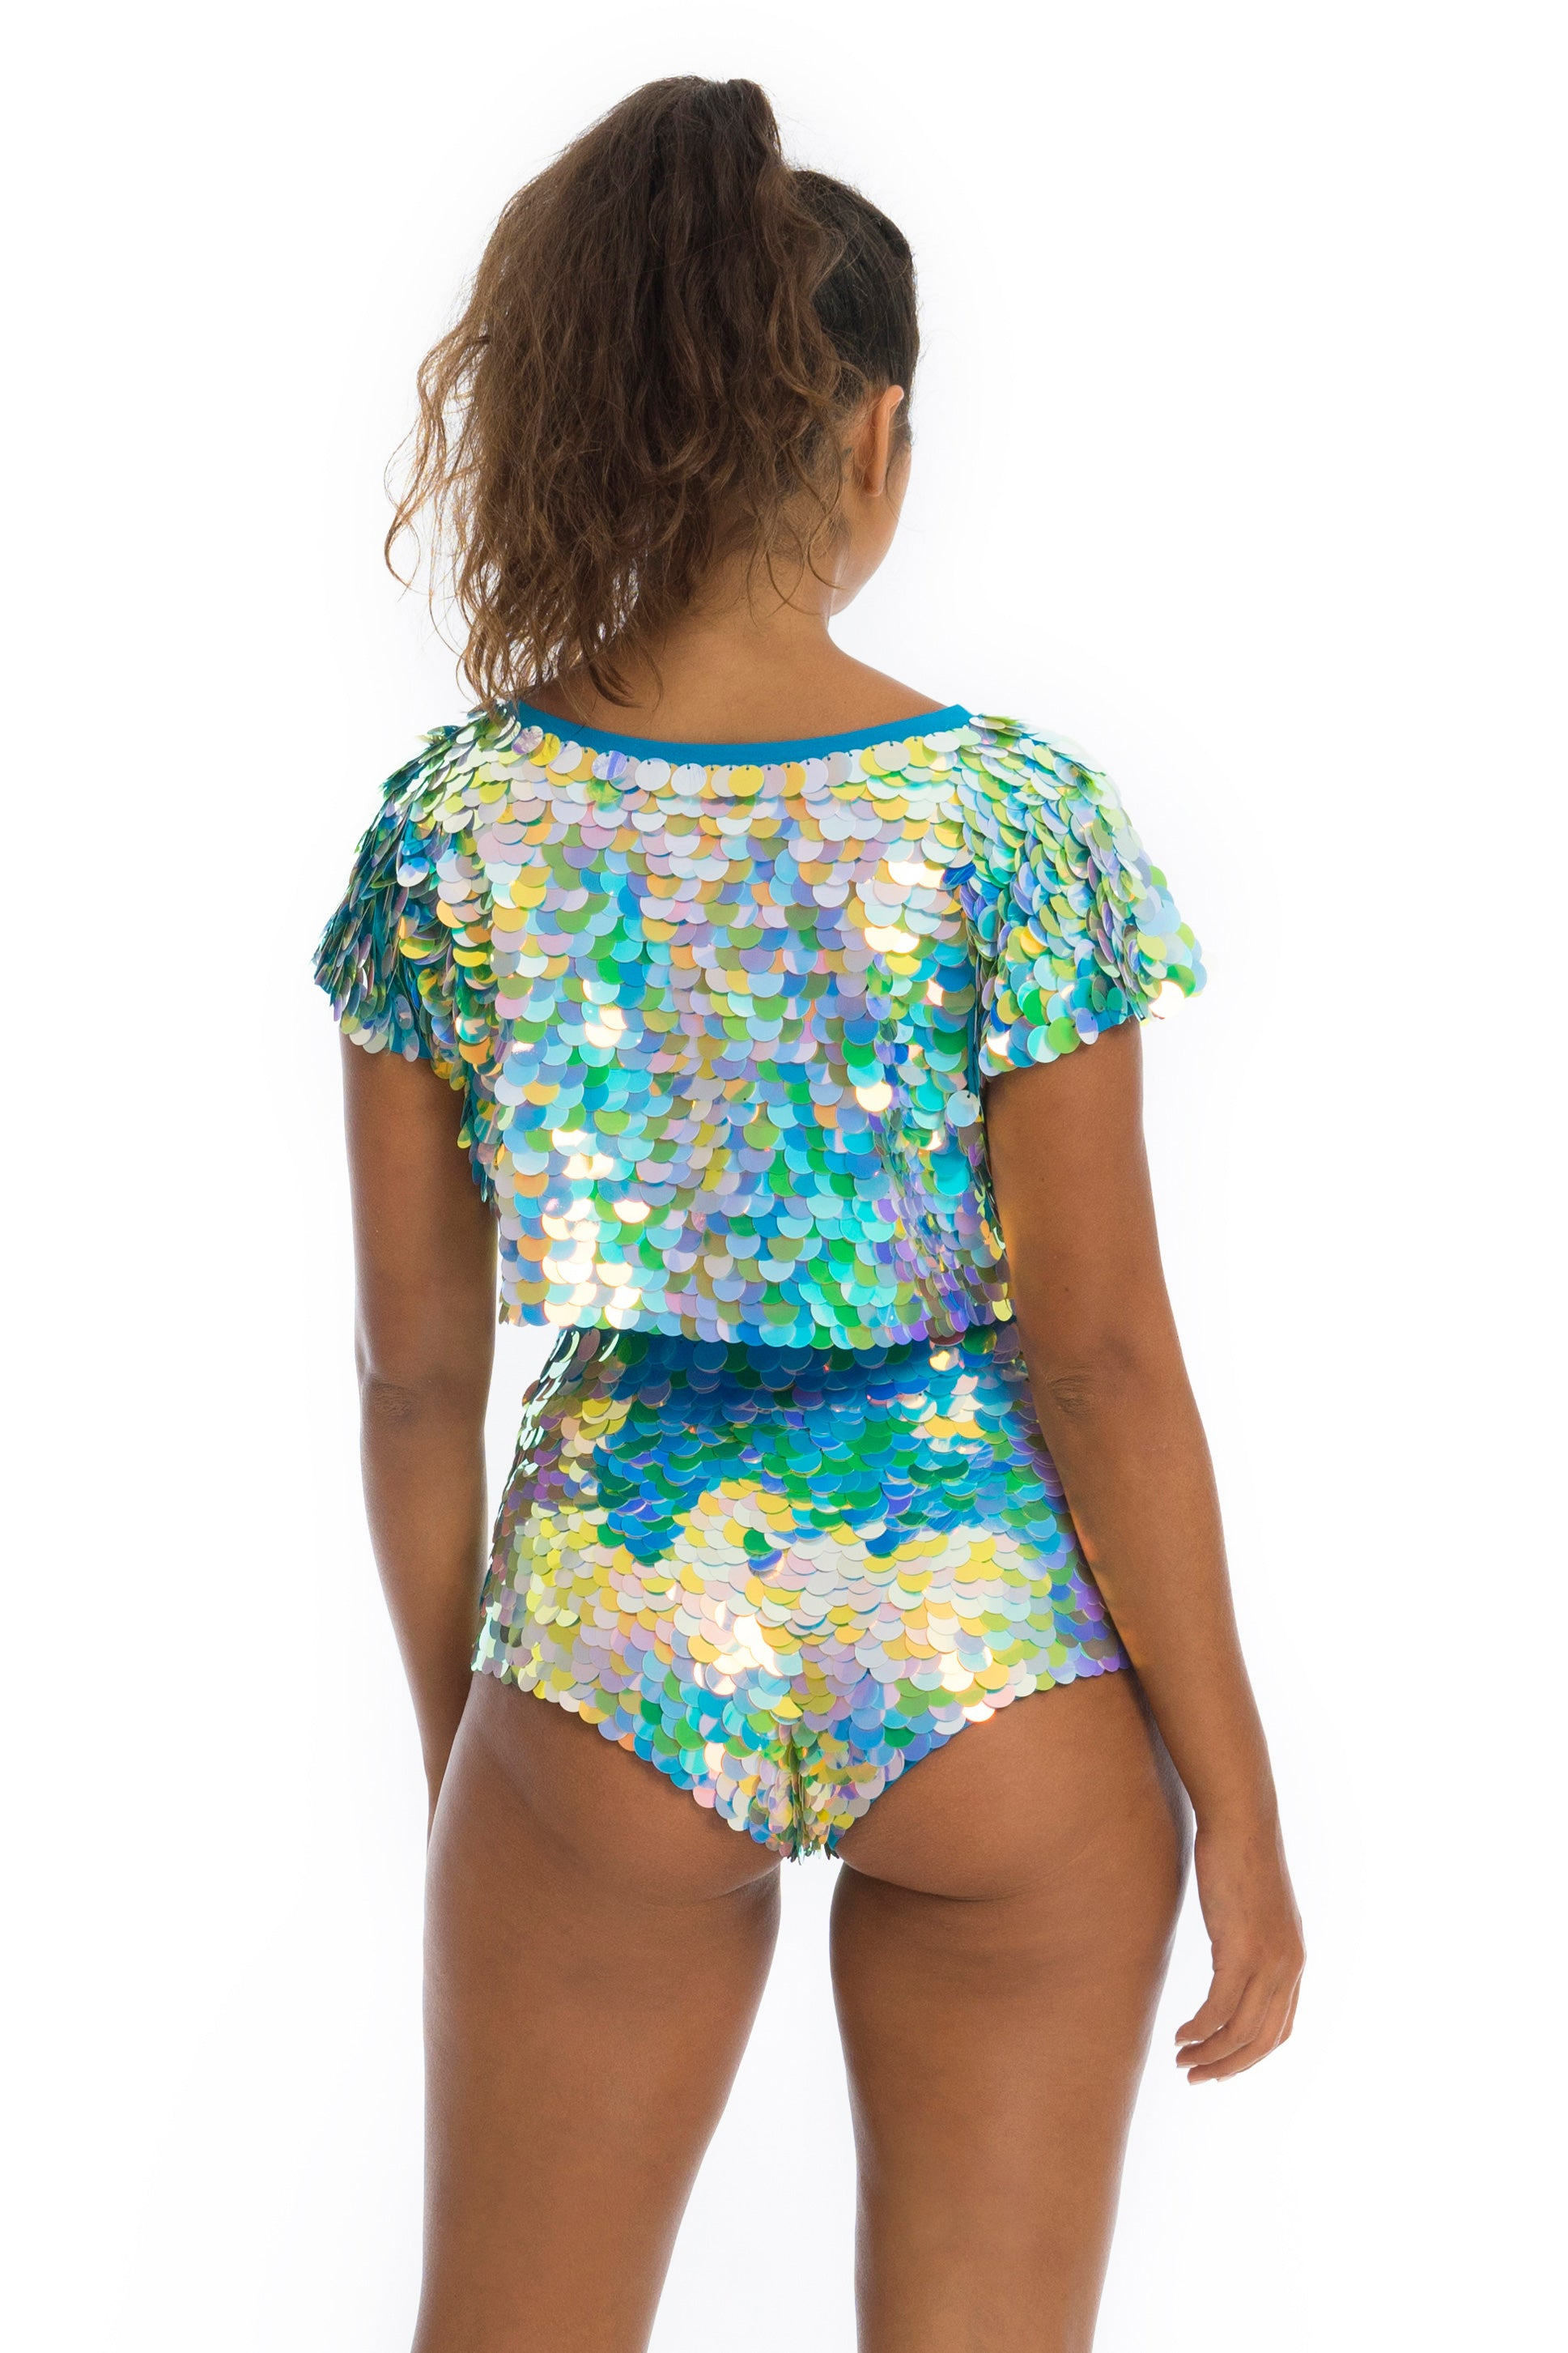 rosa bloom daydream gigi hot pants in blue and green festival sequins